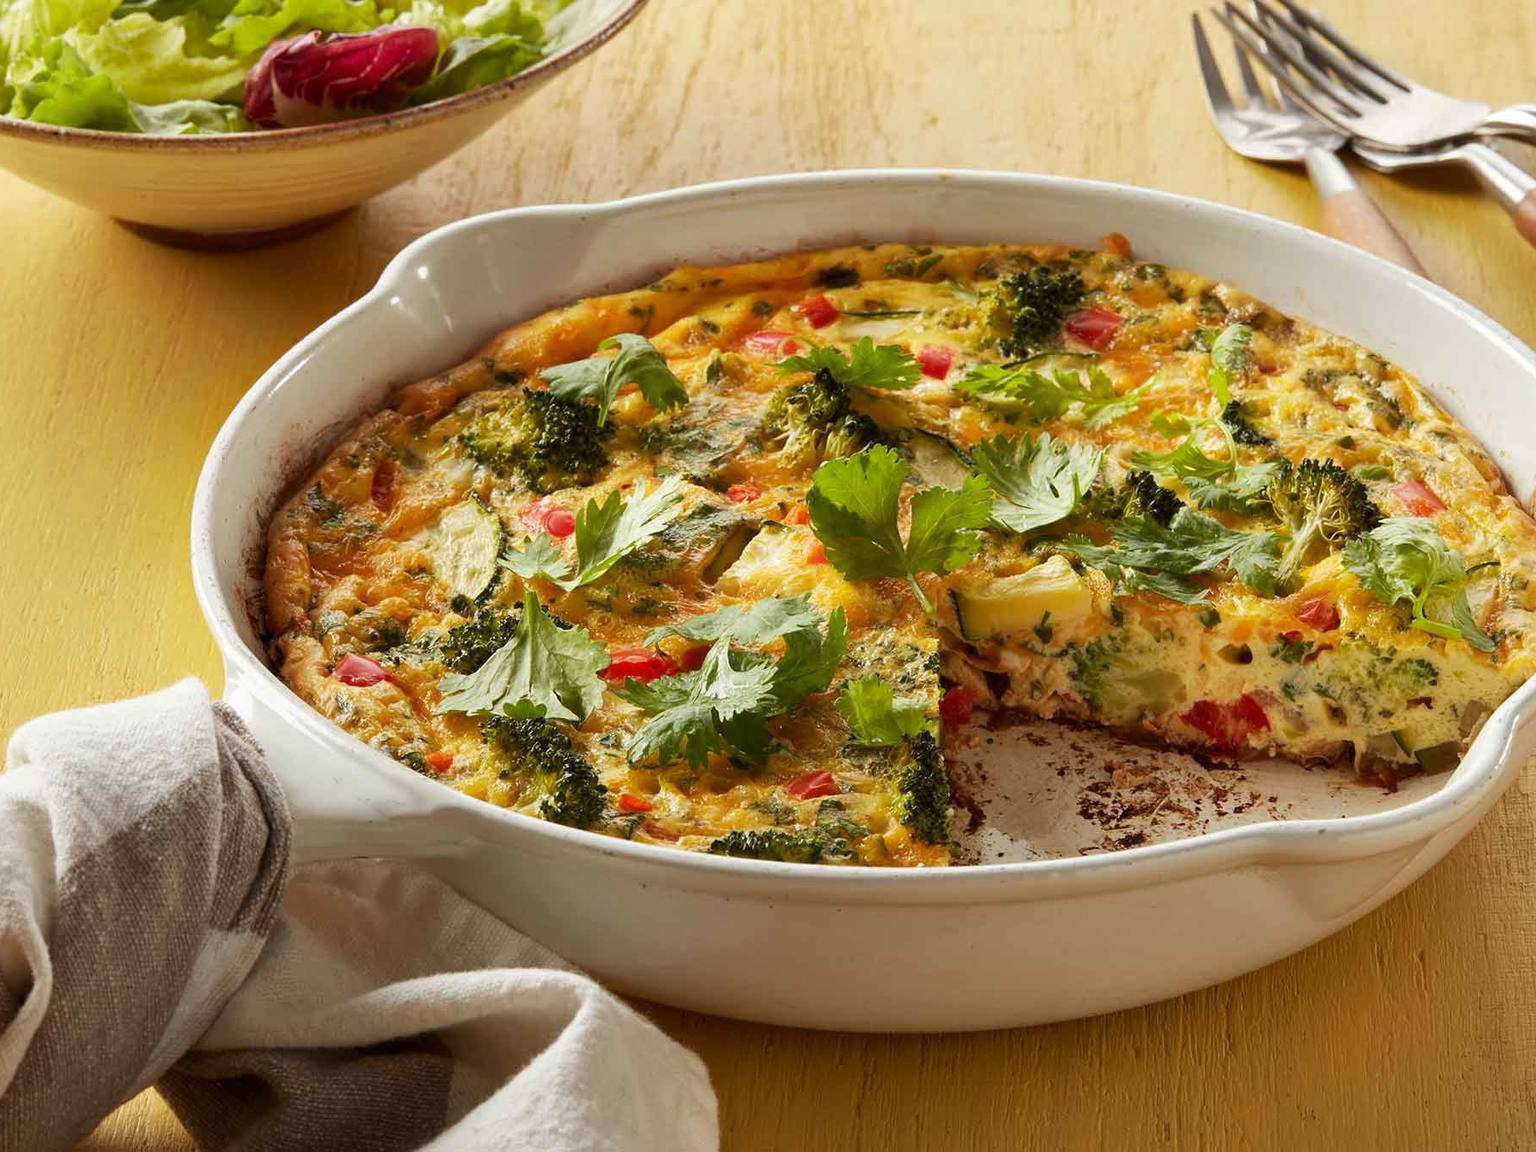 Full of Veggies Frittata